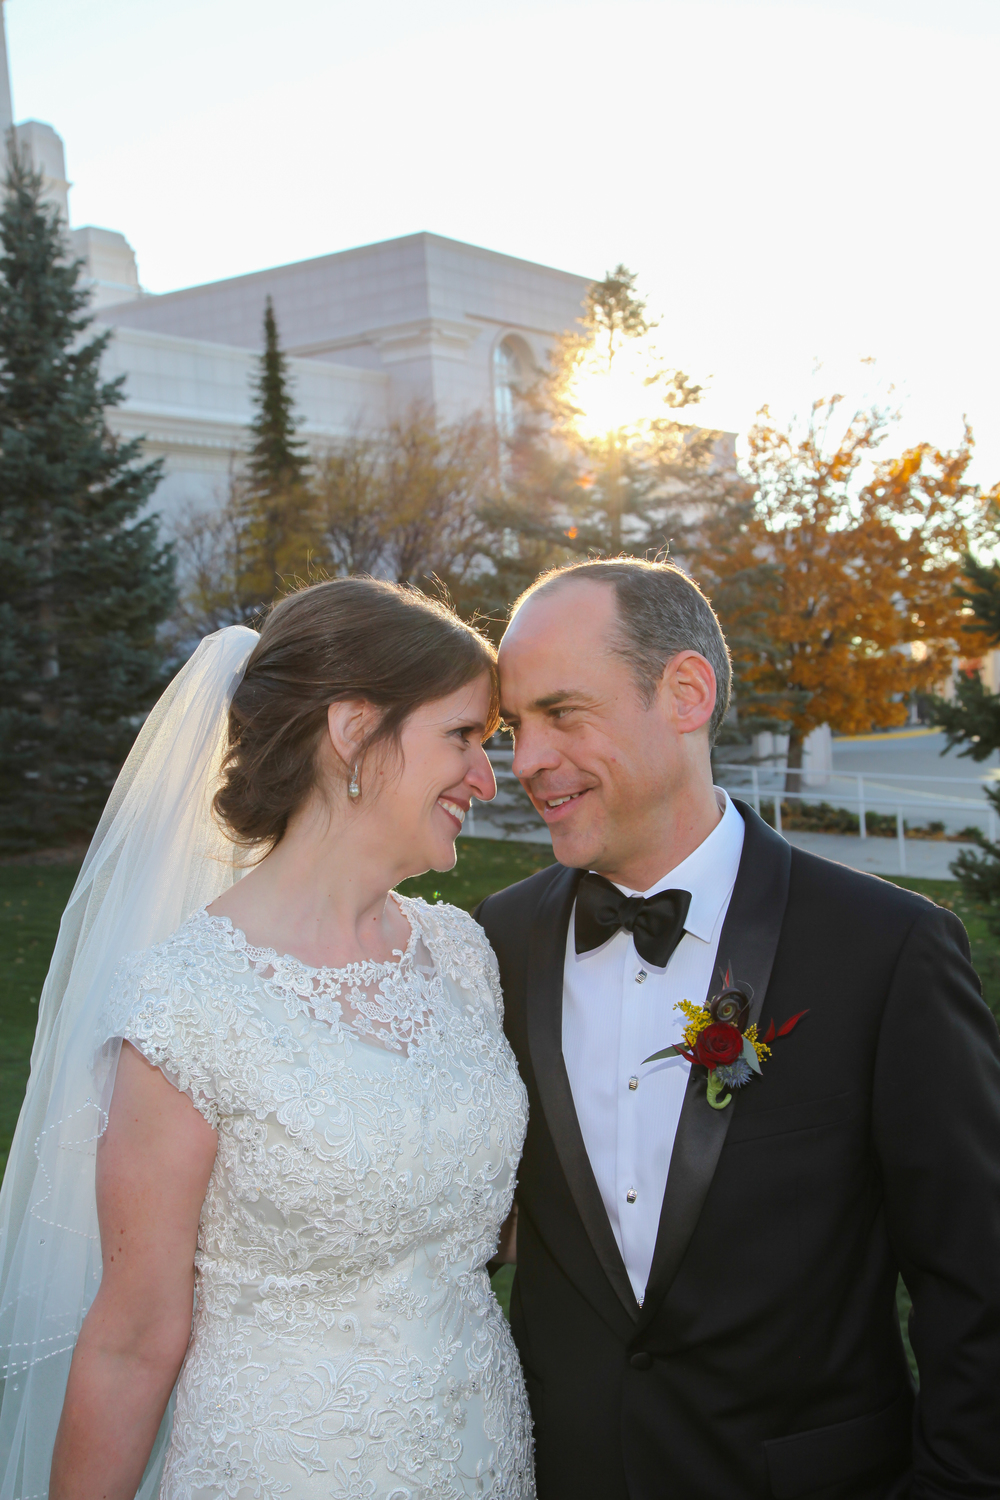 Bountiful wedding photography at the Bountiful LDS Temple